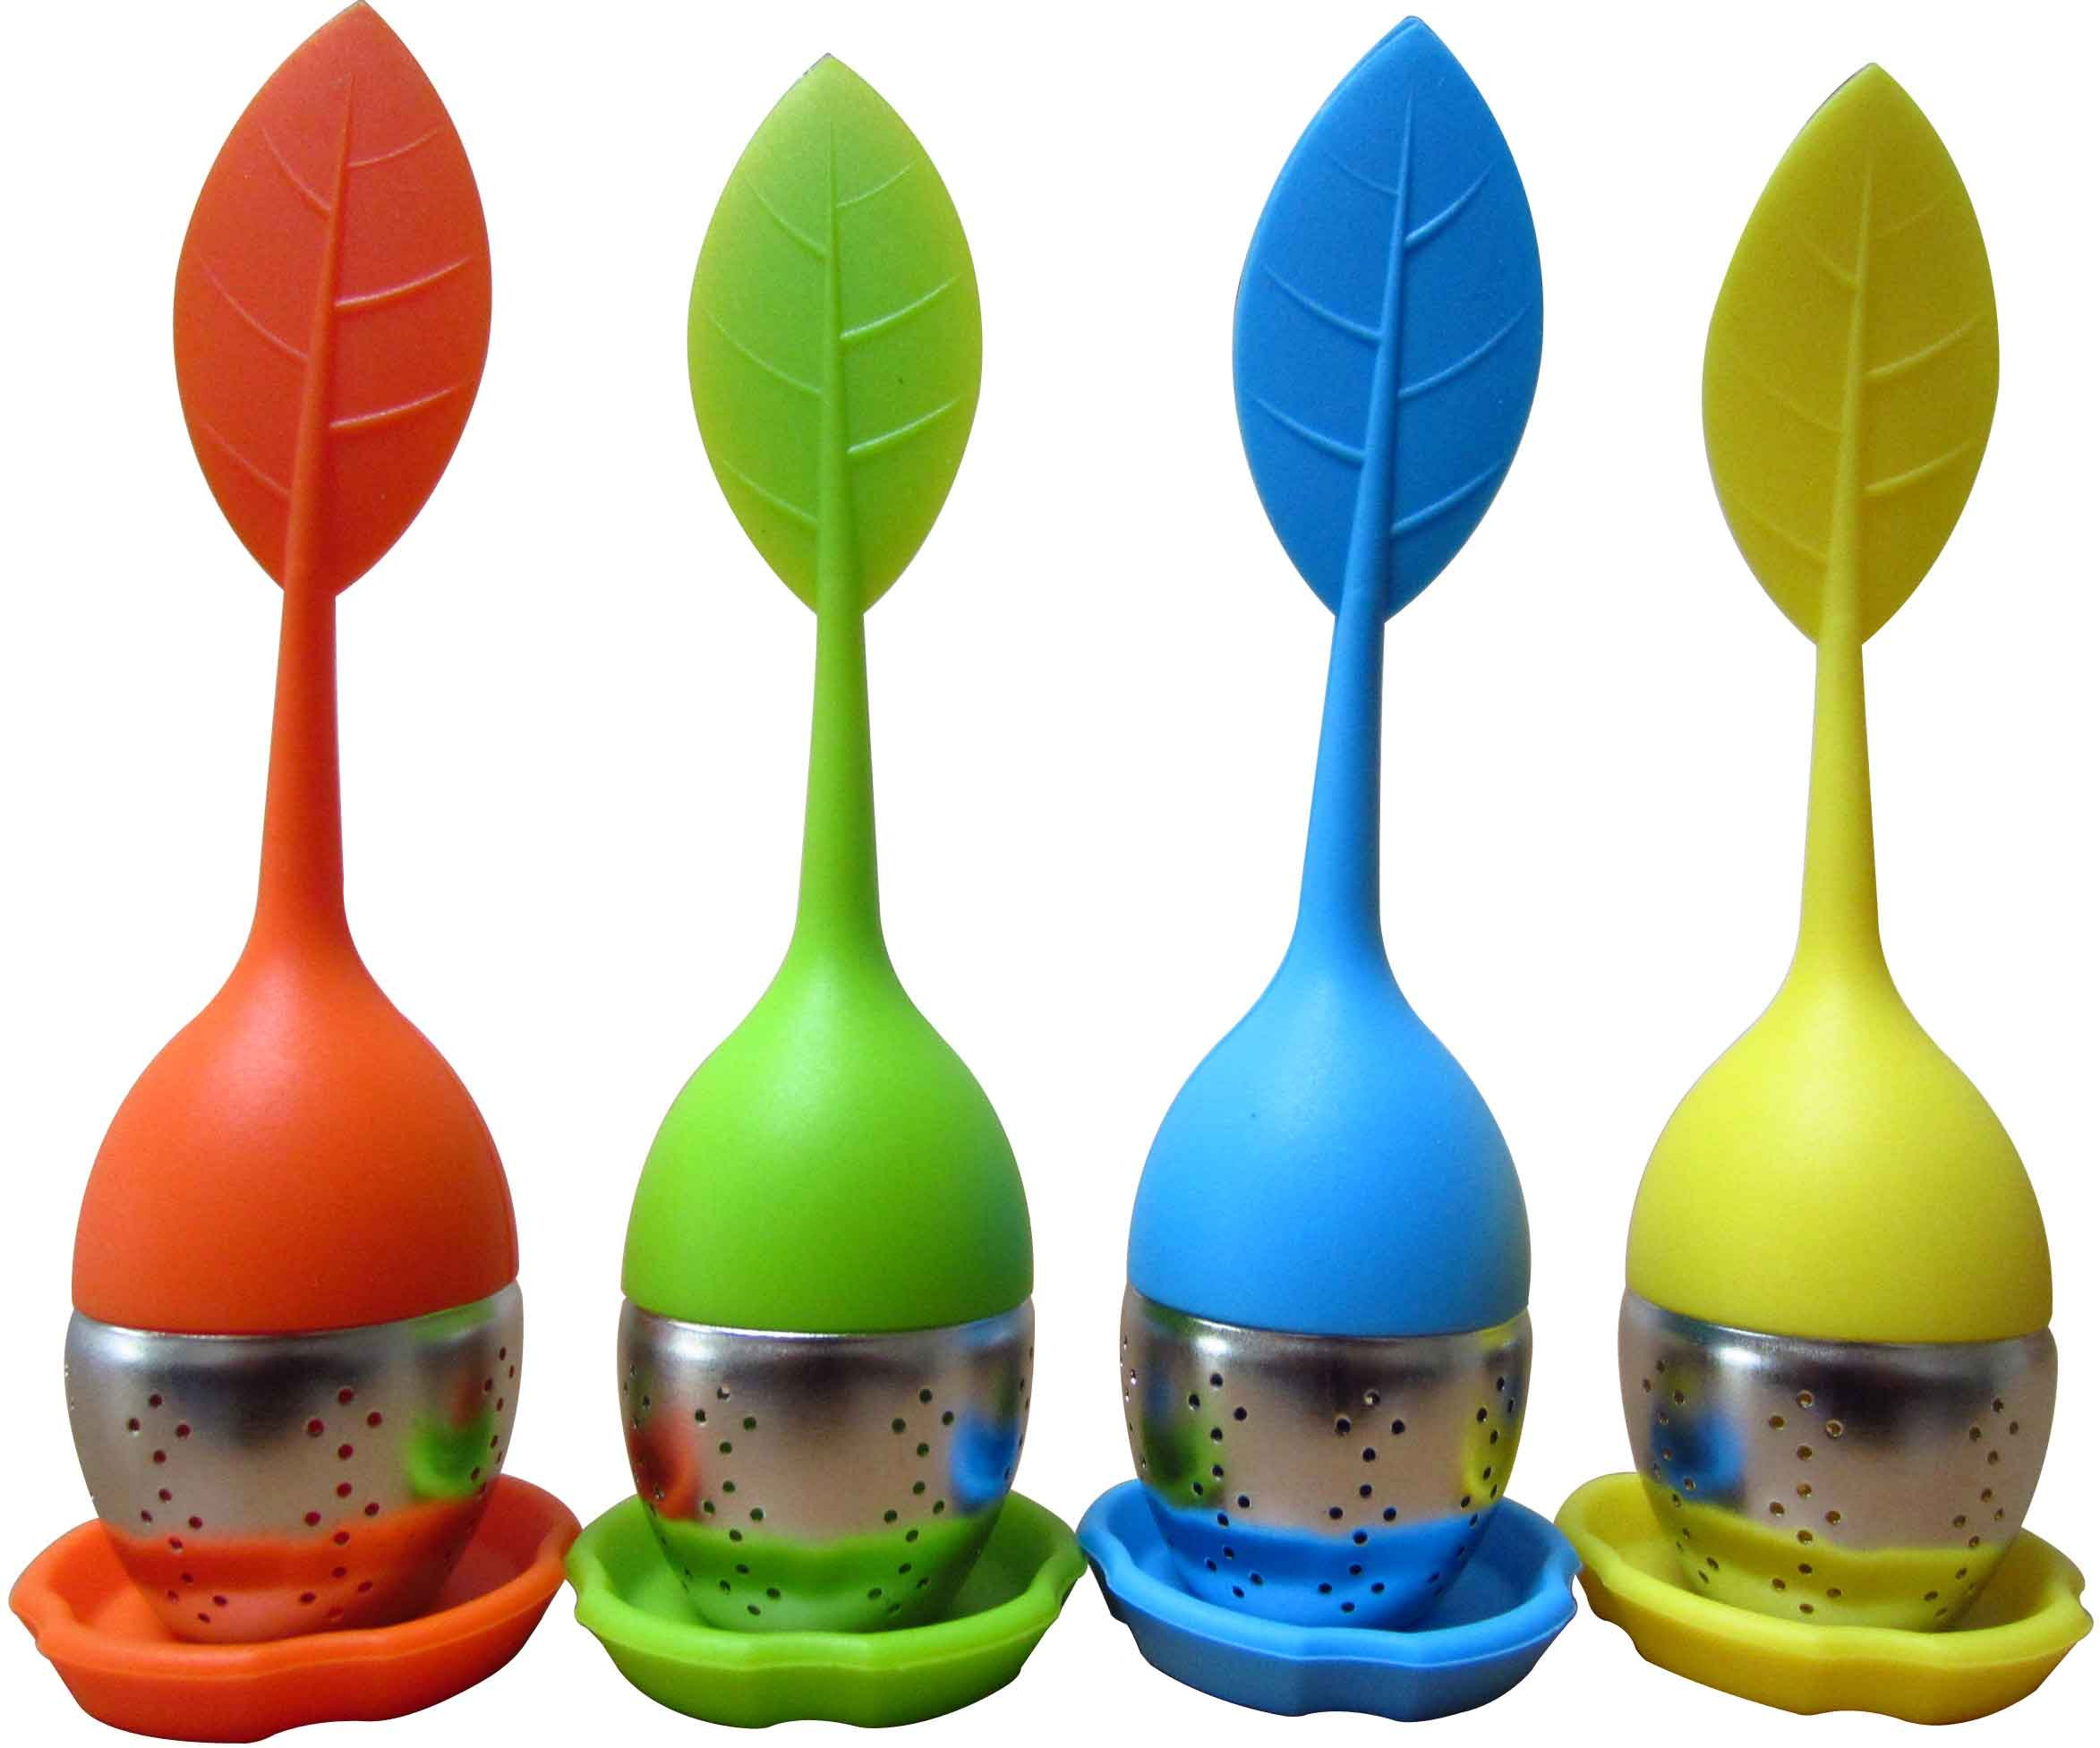 Silicone Loose Tea Infuser - LeBeila Long Leaf Shape Handle 304 Stainless Steel Strainers Reusable Ball Steeper Set Silicon Mat Herbal Teas Leaves Filters Bags For Cup, Teapot, Mug (4pcs, 4Colors)